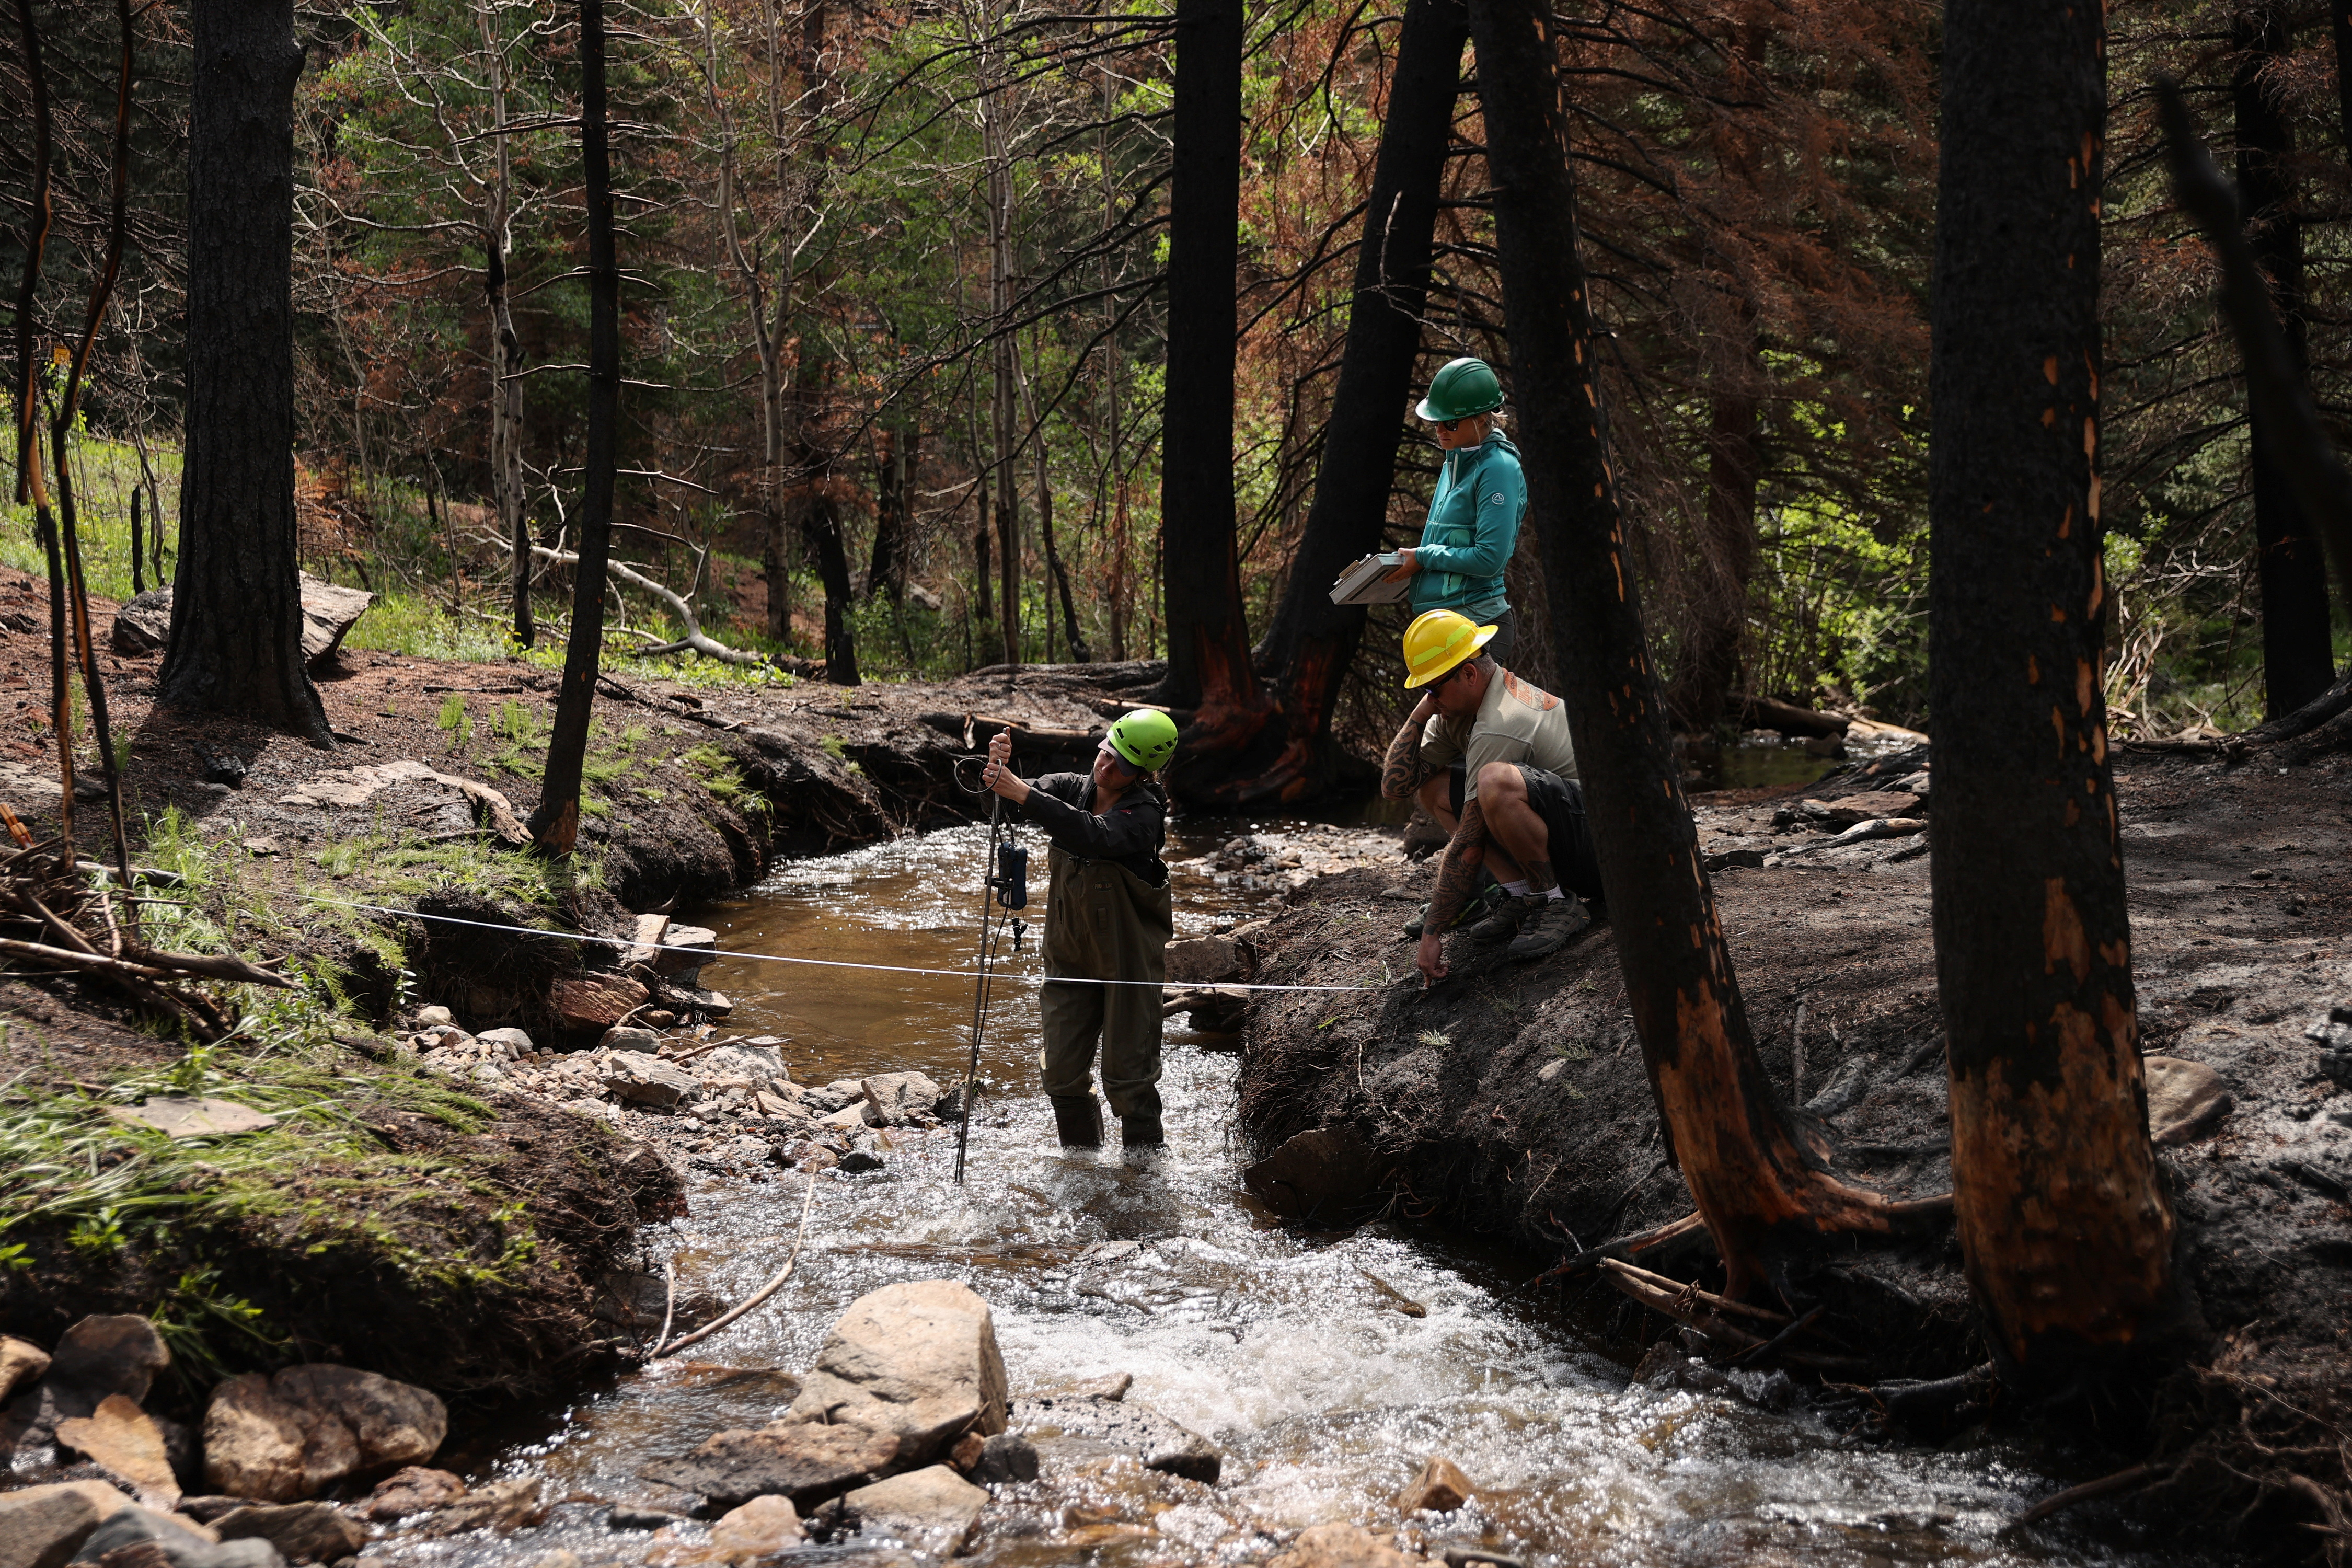 Katie Willi, Megan Sears and Ian Lilya, all with the United States Forest Service, collect water quality data along a tributary to the Poudre River inside the Cameron Peak fire burn scar west of Fort Collins, Colorado, U.S., June 29, 2021. Huge forest fires last year denuded vast areas of Colorado's mountains and left them covered in ash – ash that with sediment has since been washed by rains into the Cache la Poudre River. Picture taken June 29, 2021. REUTERS/Forrest Czarnecki